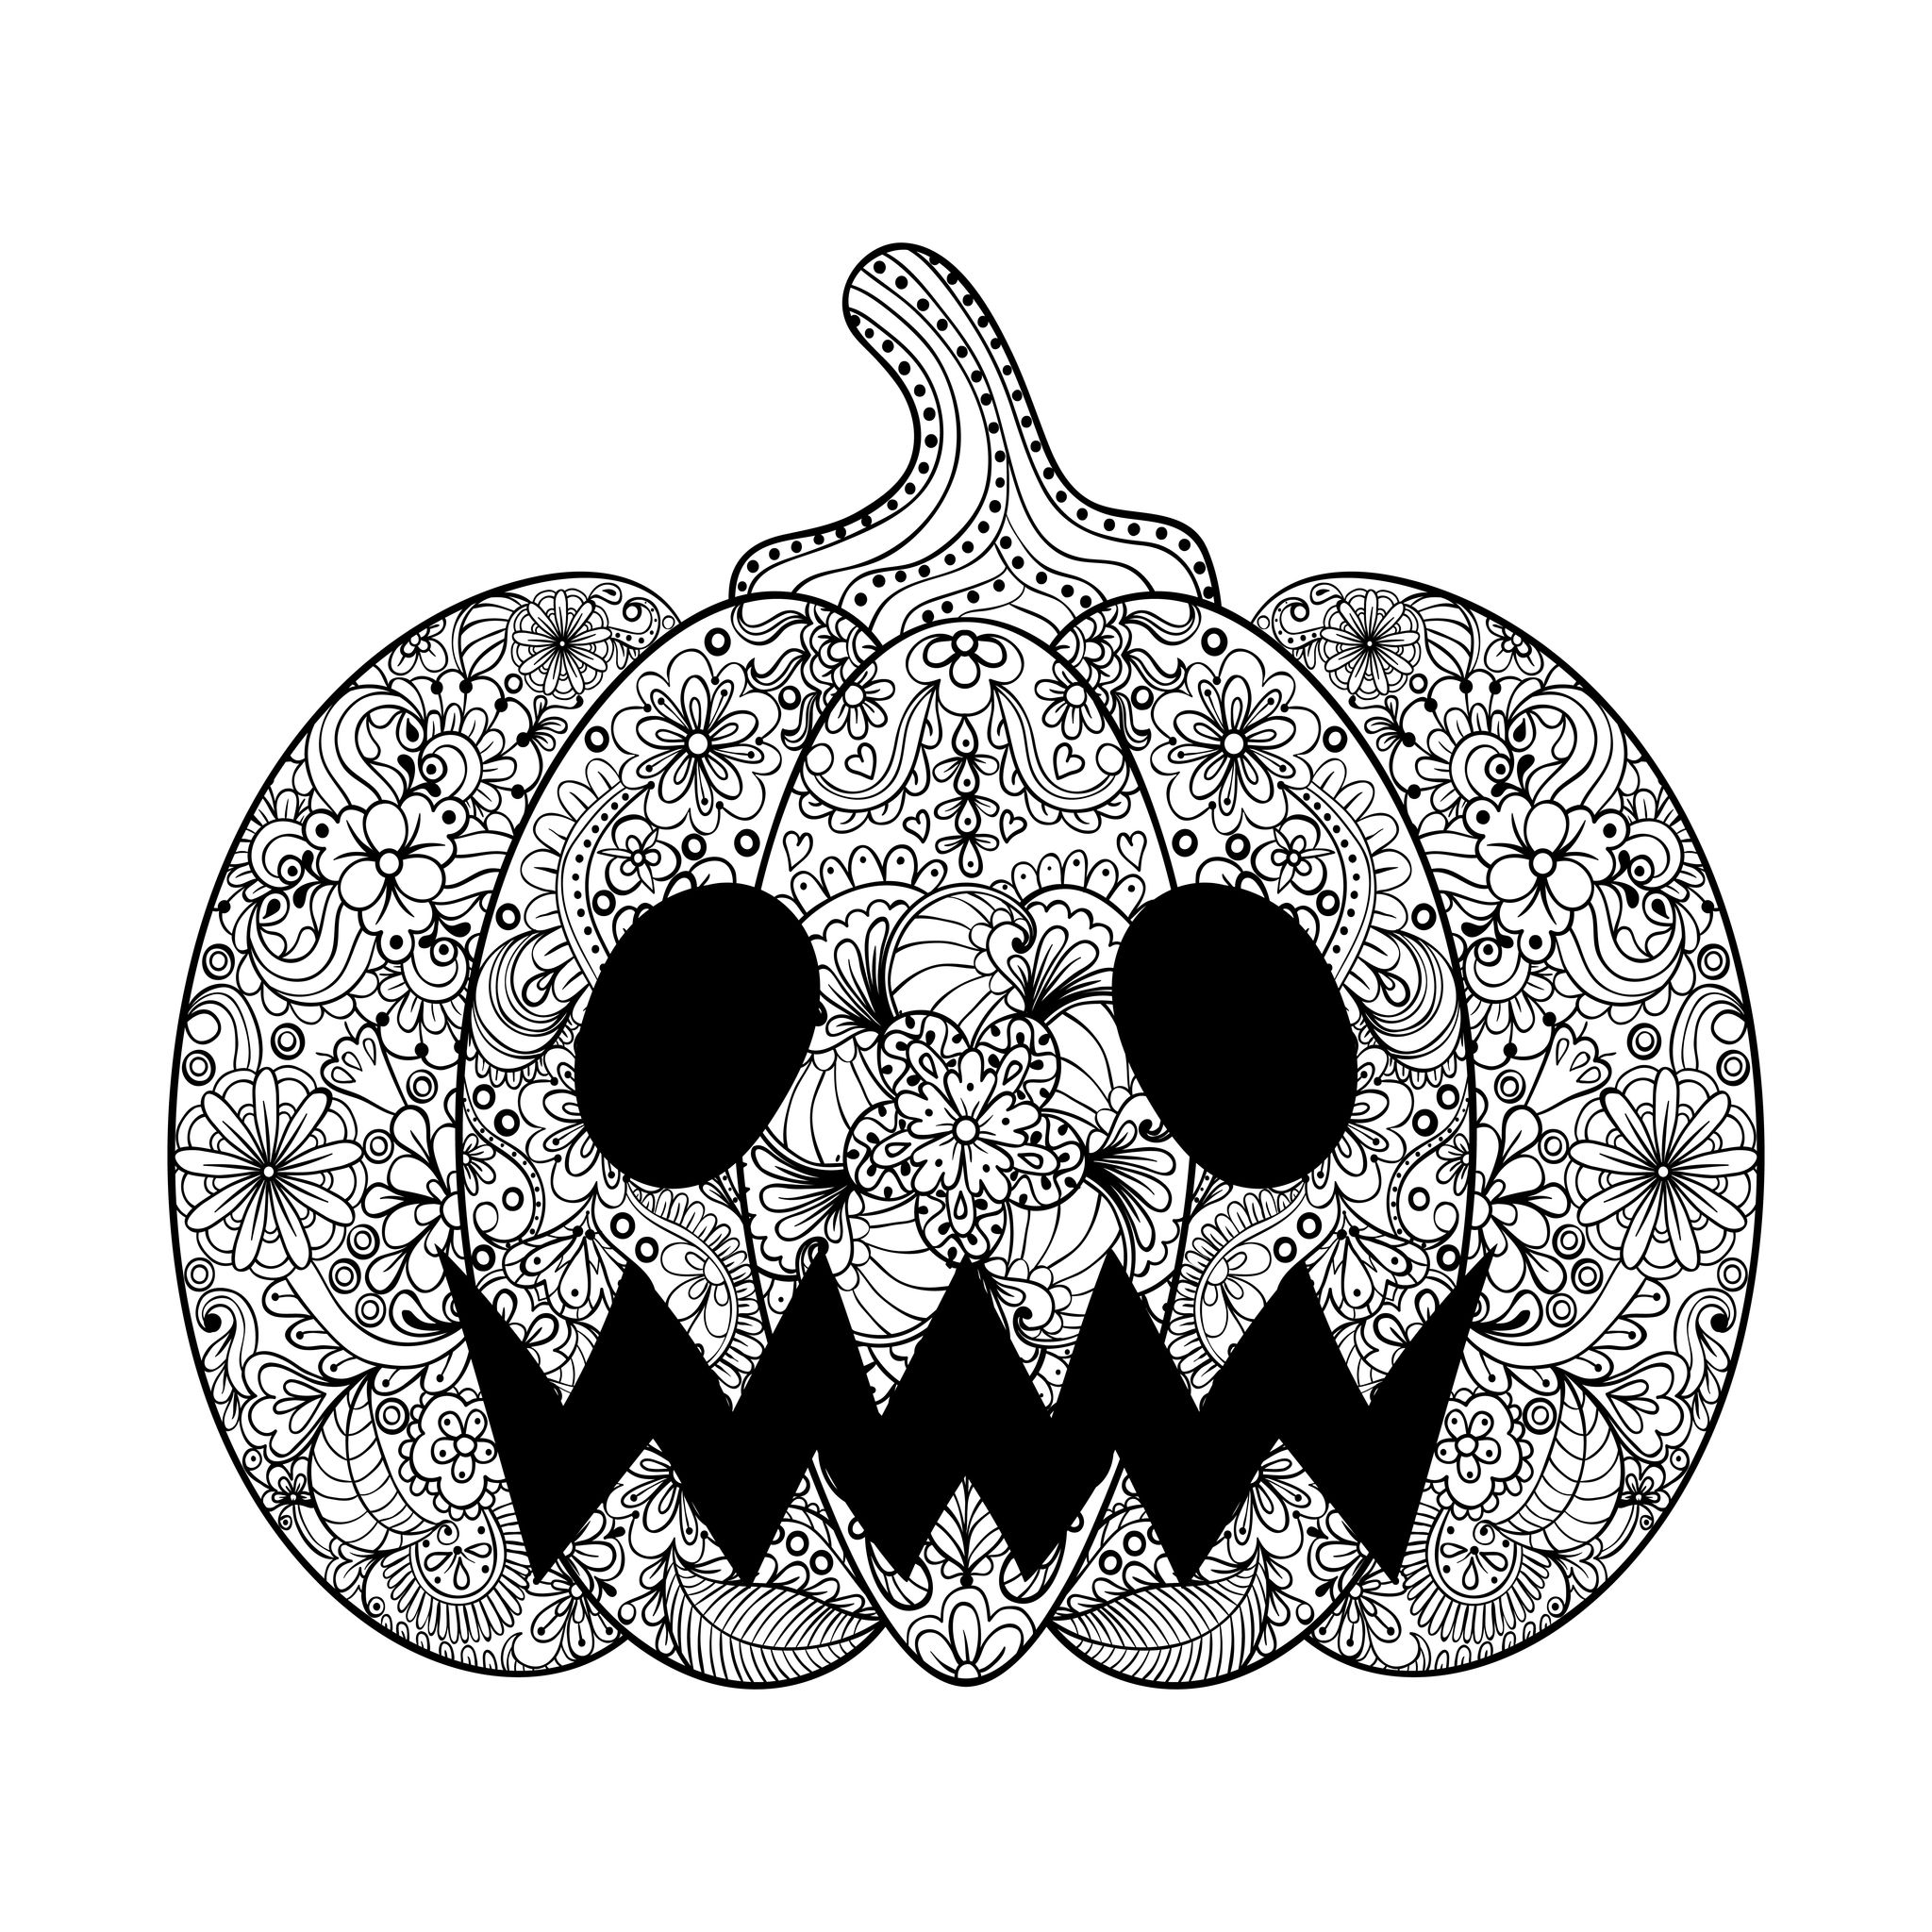 pumpkin illustration an halloween coloring page drawn in zentangle style from the gallery - Halloween Werewolf Coloring Pages